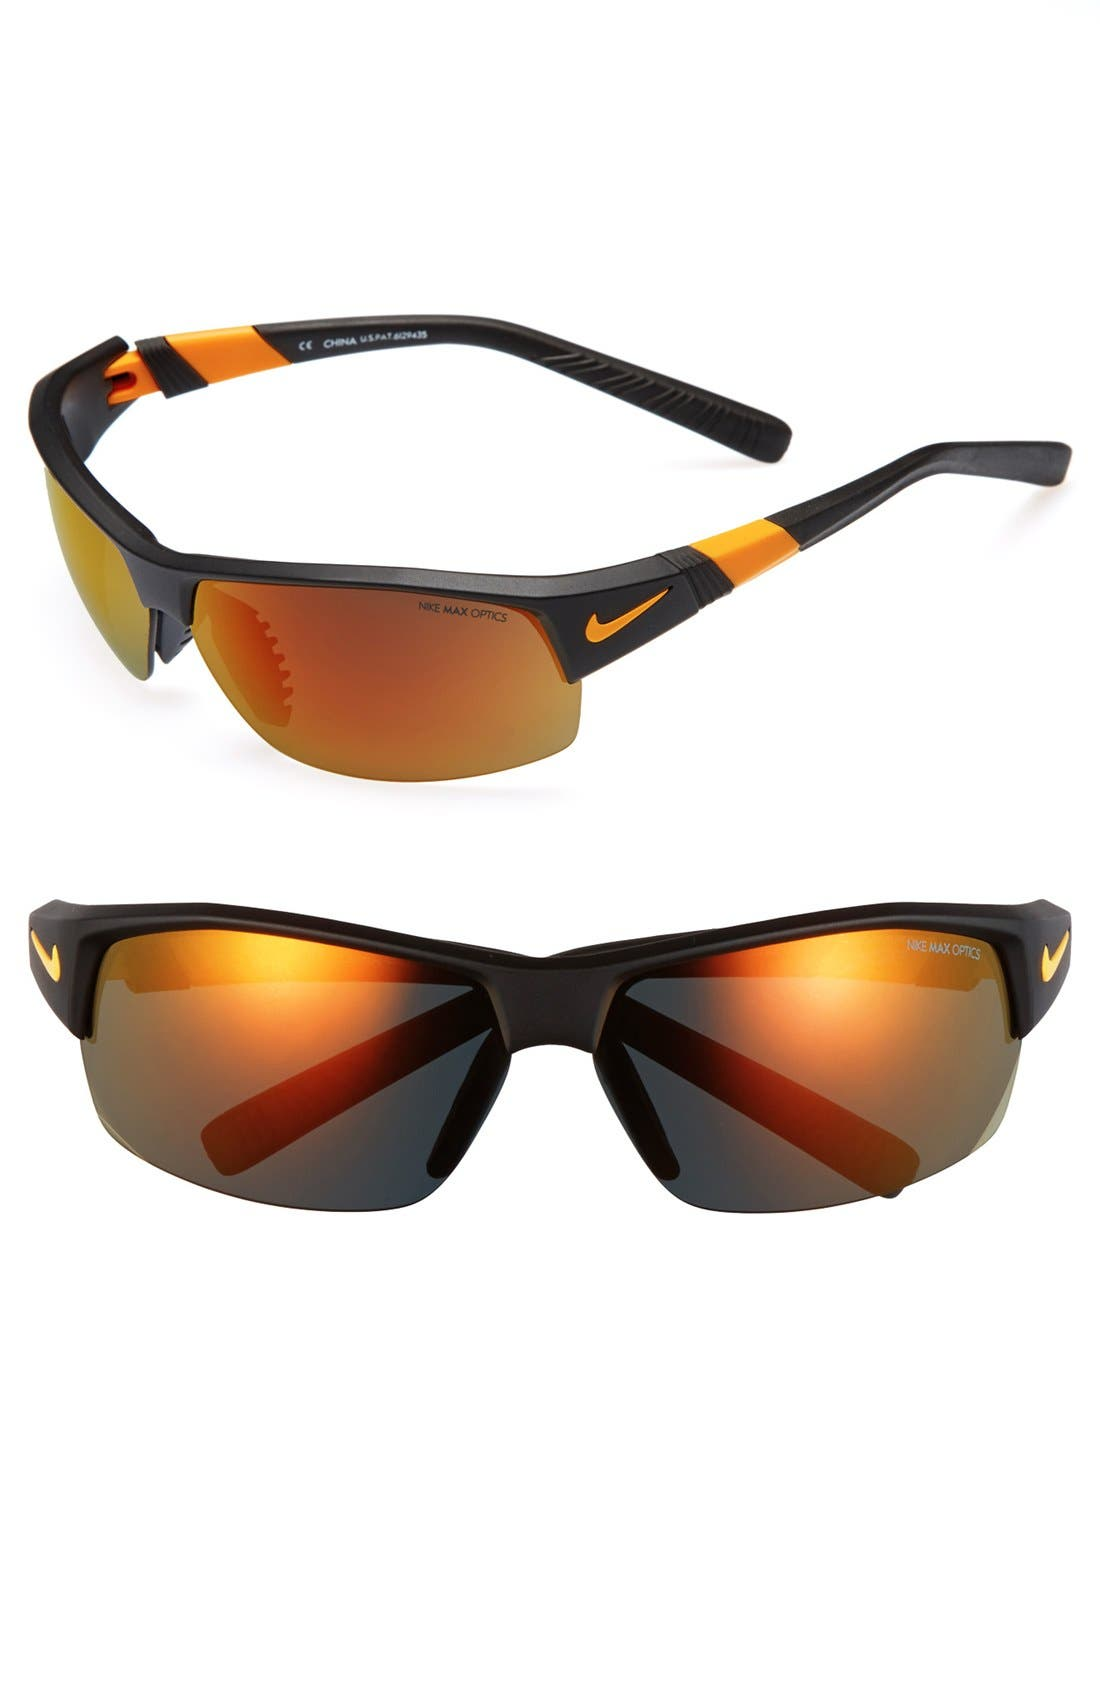 Main Image - Nike 69mm Wrap Sunglasses